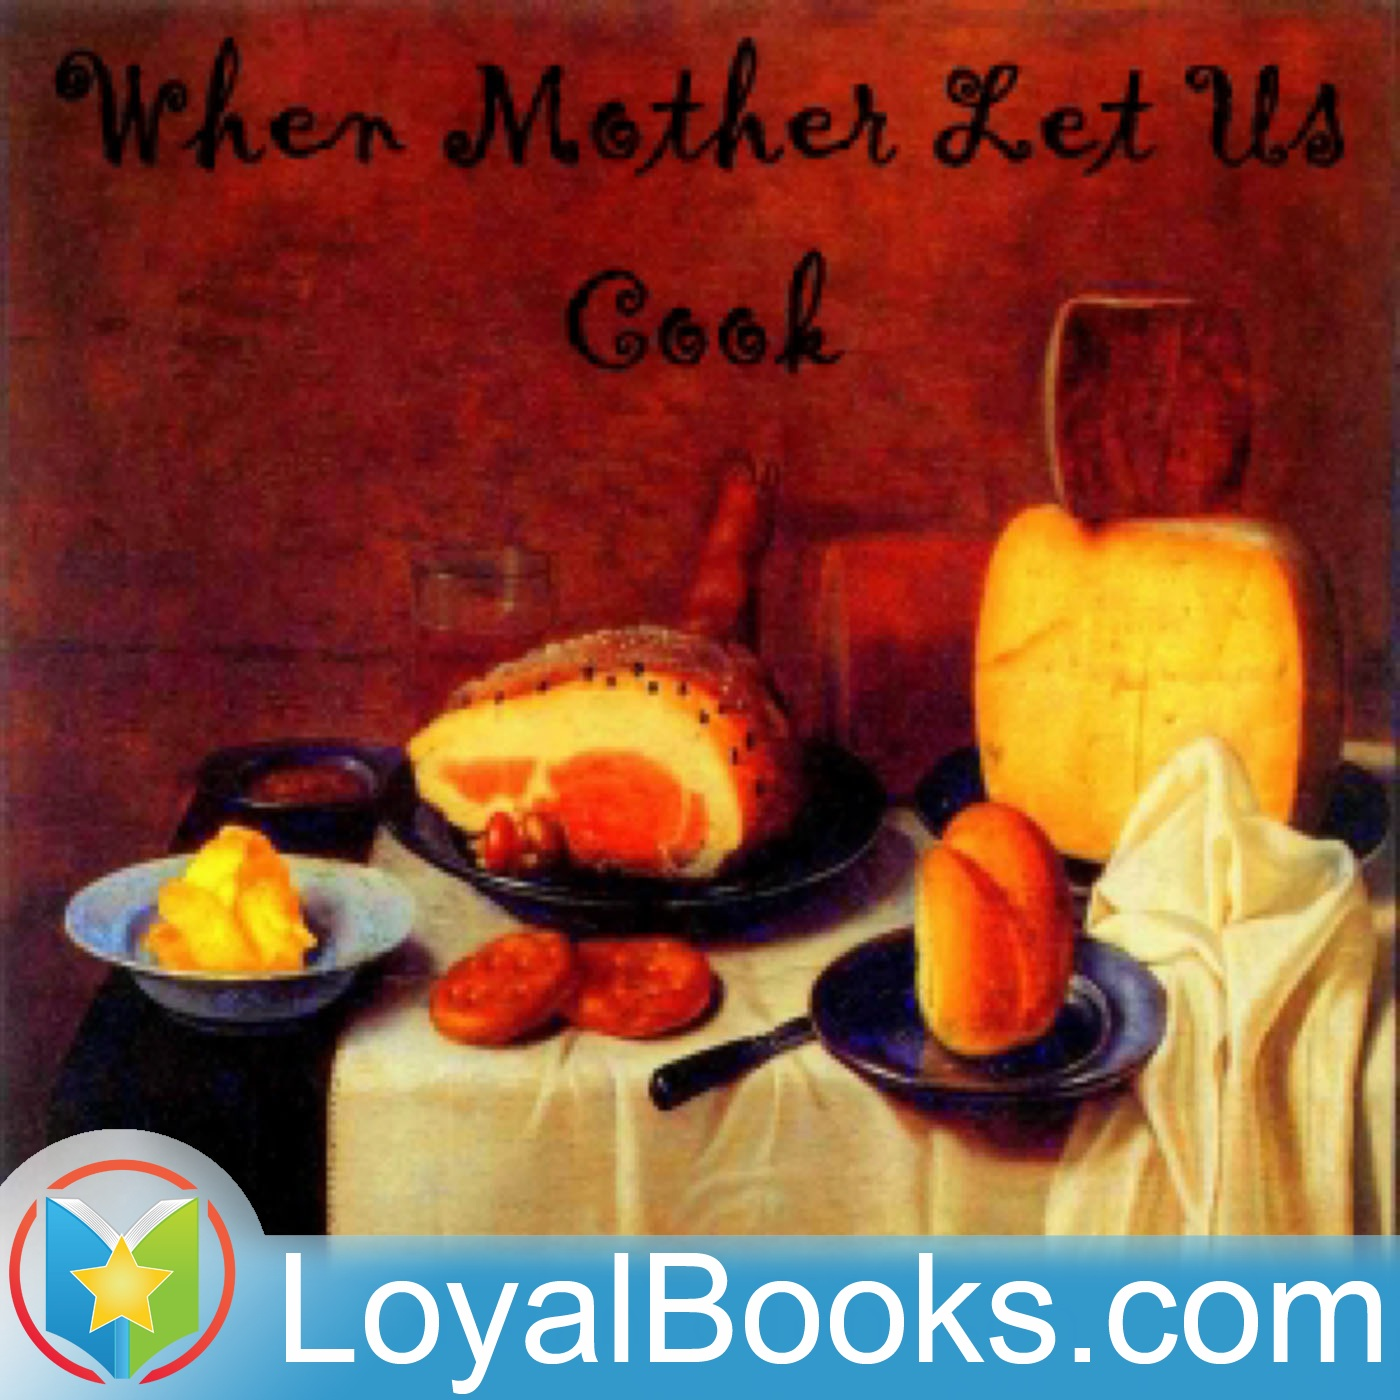 <![CDATA[When Mother Lets Us Cook by Constance Johnson]]>